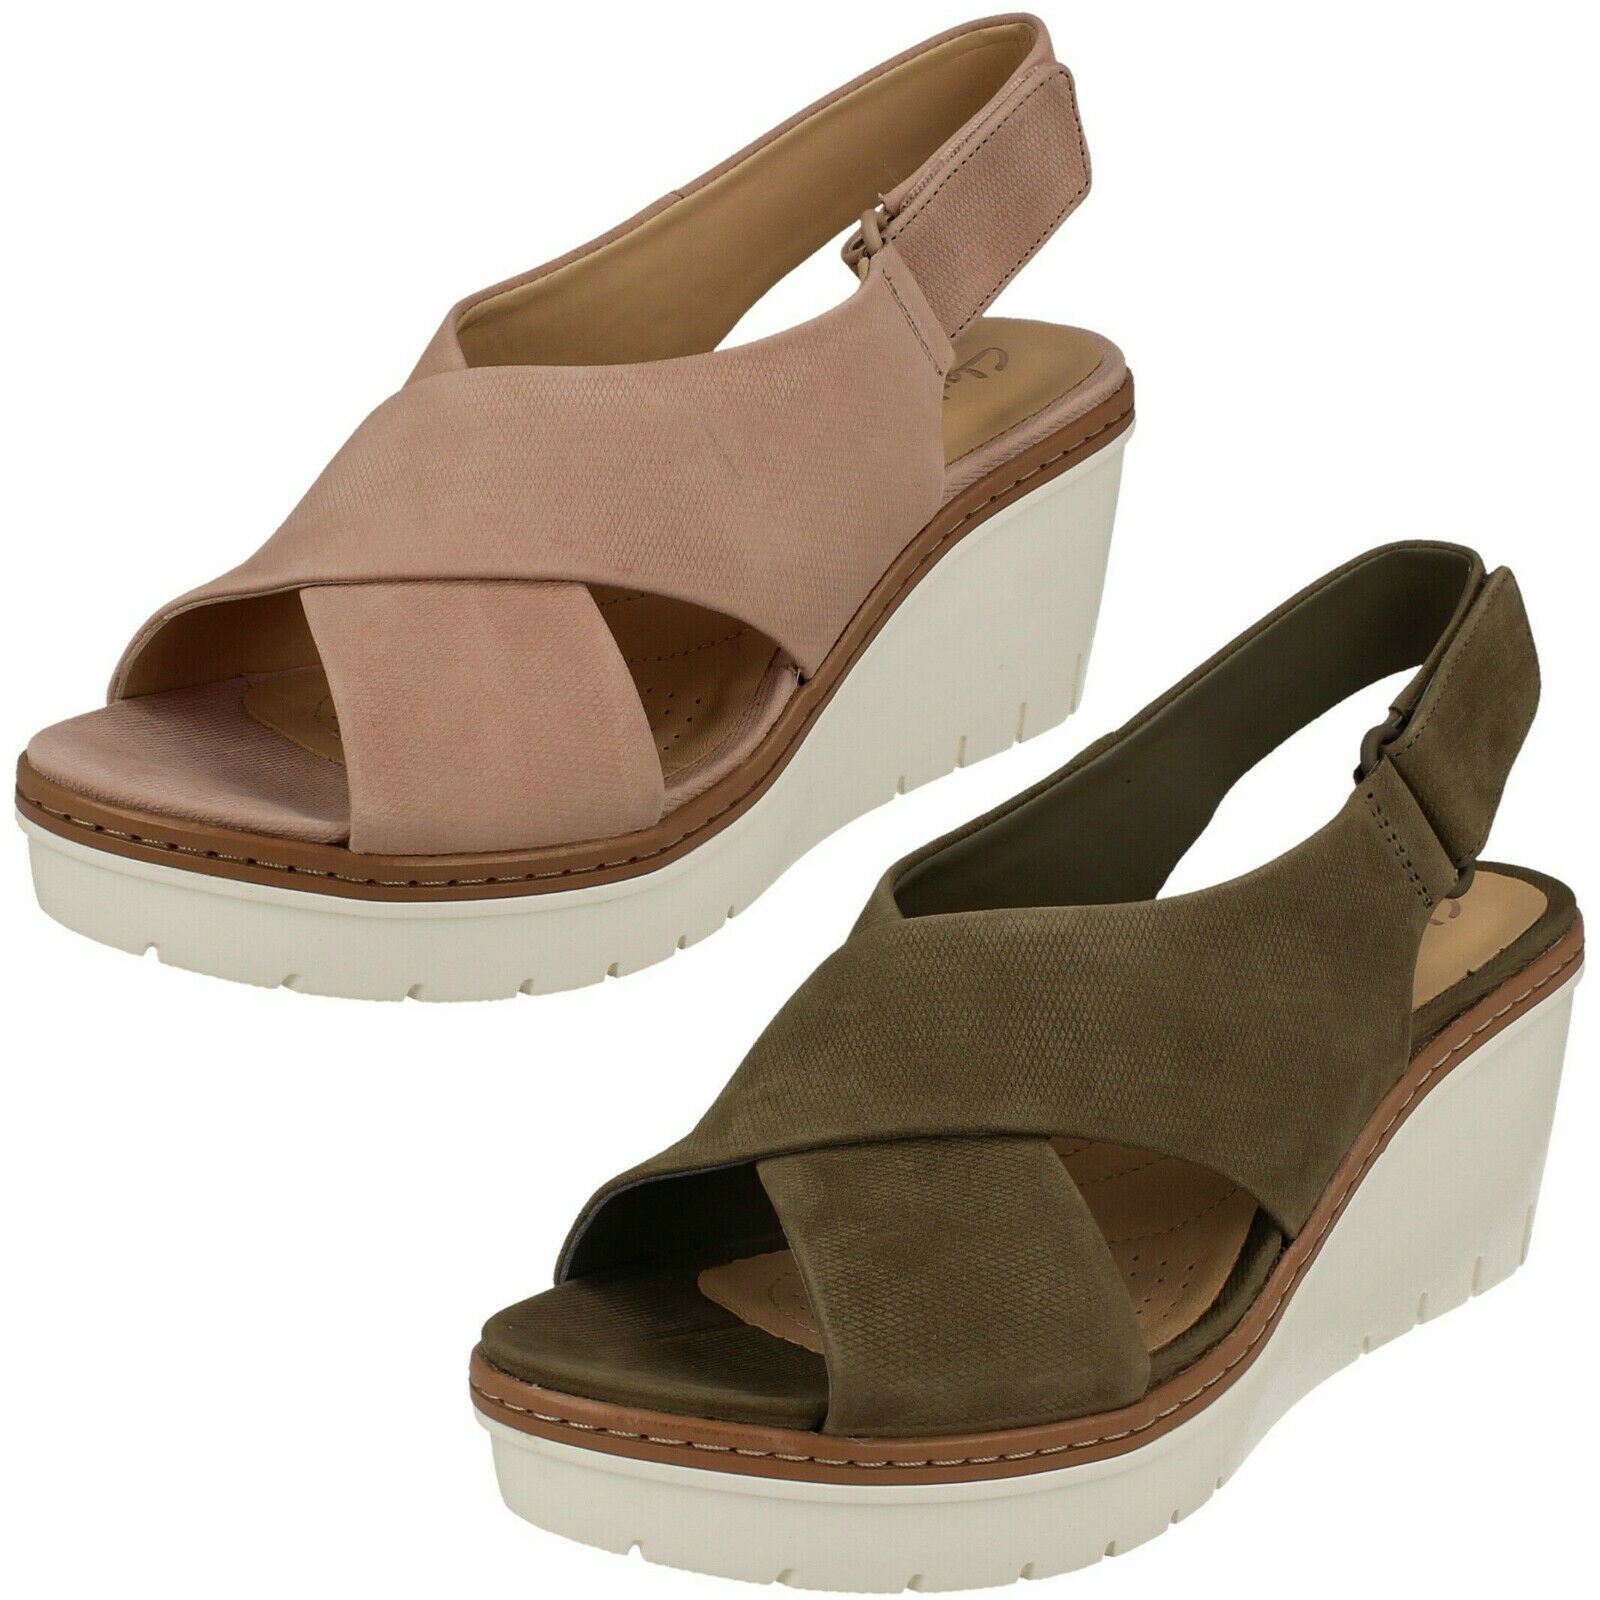 Ladies Clarks 'Palm Candid' bluesh Or Olive Nubuck Leather Wedge Heel Sandals